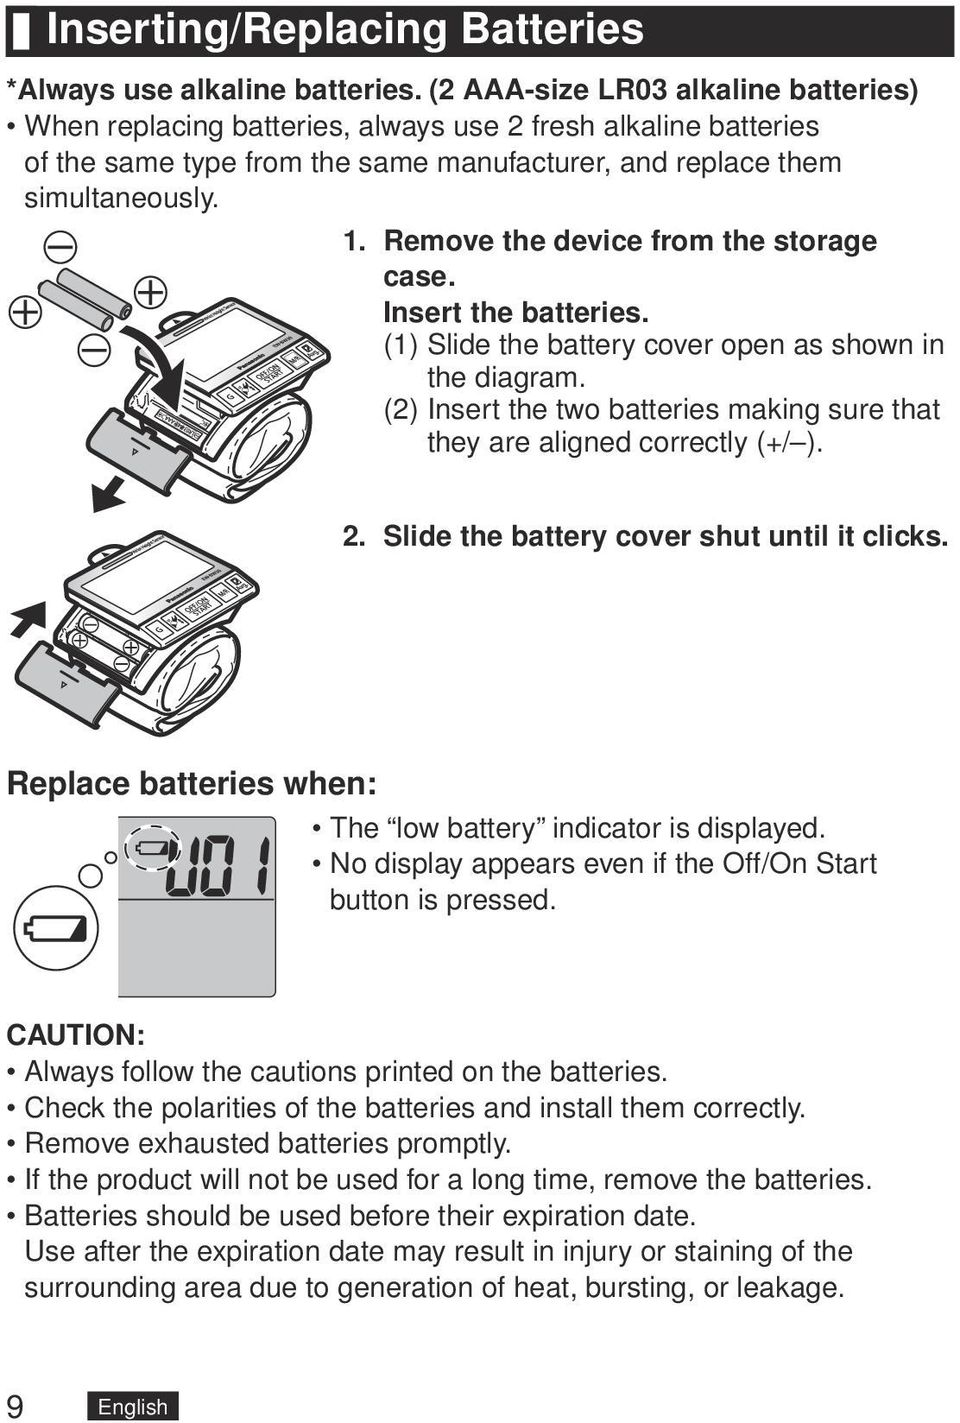 Remove the device from the storage case. Insert the batteries. (1) Slide the battery cover open as shown in the diagram. (2) Insert the two batteries making sure that they are aligned correctly (+/ ).